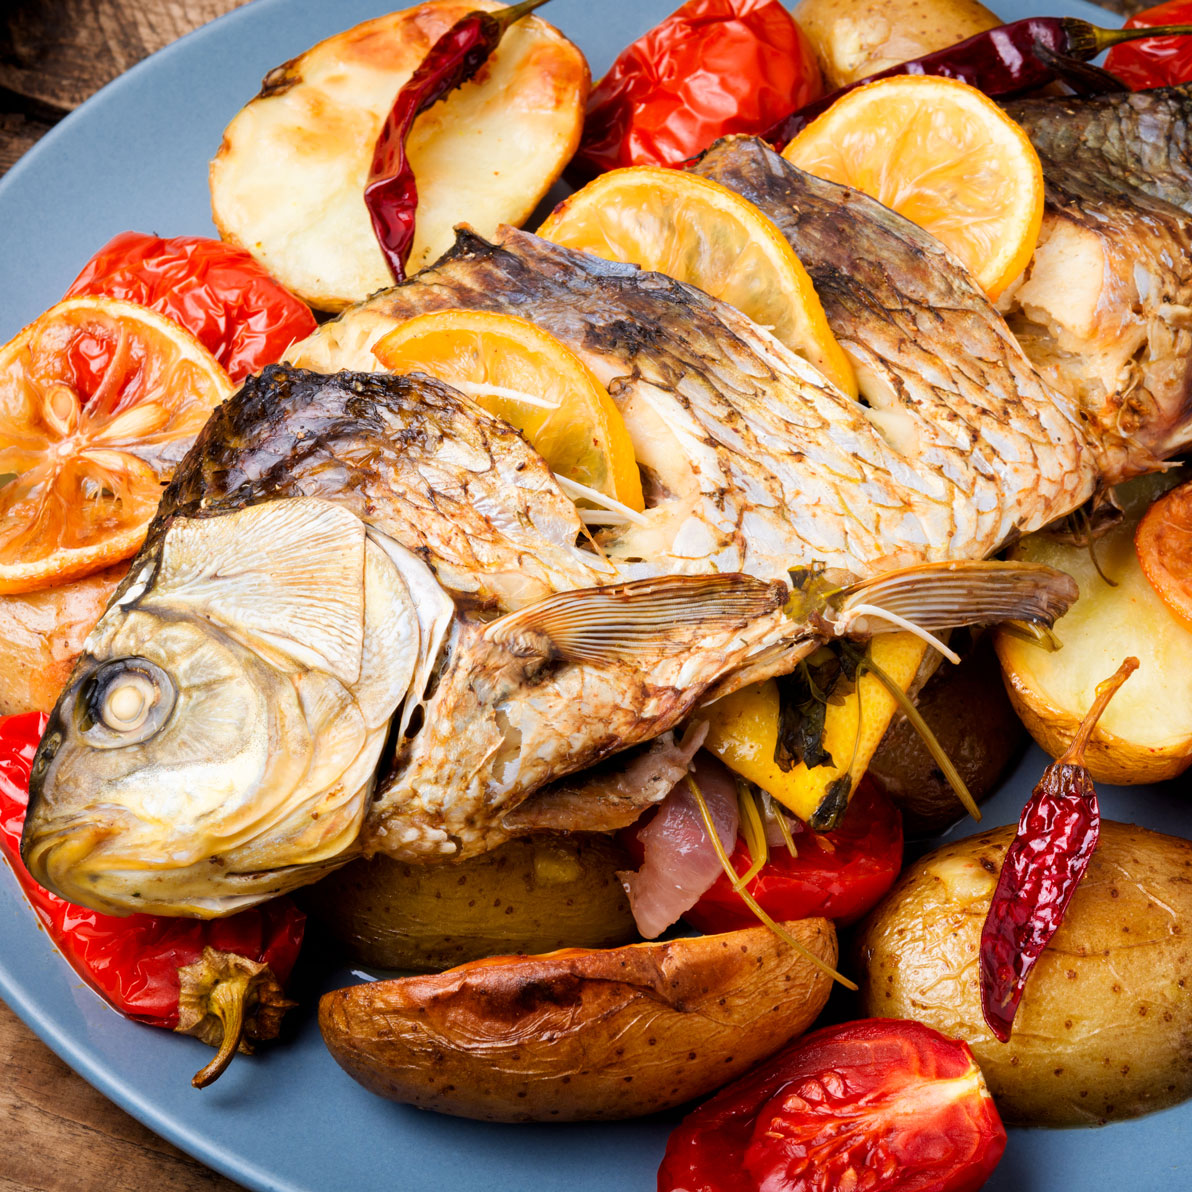 grilled-delicious-fish-XKHMG2J